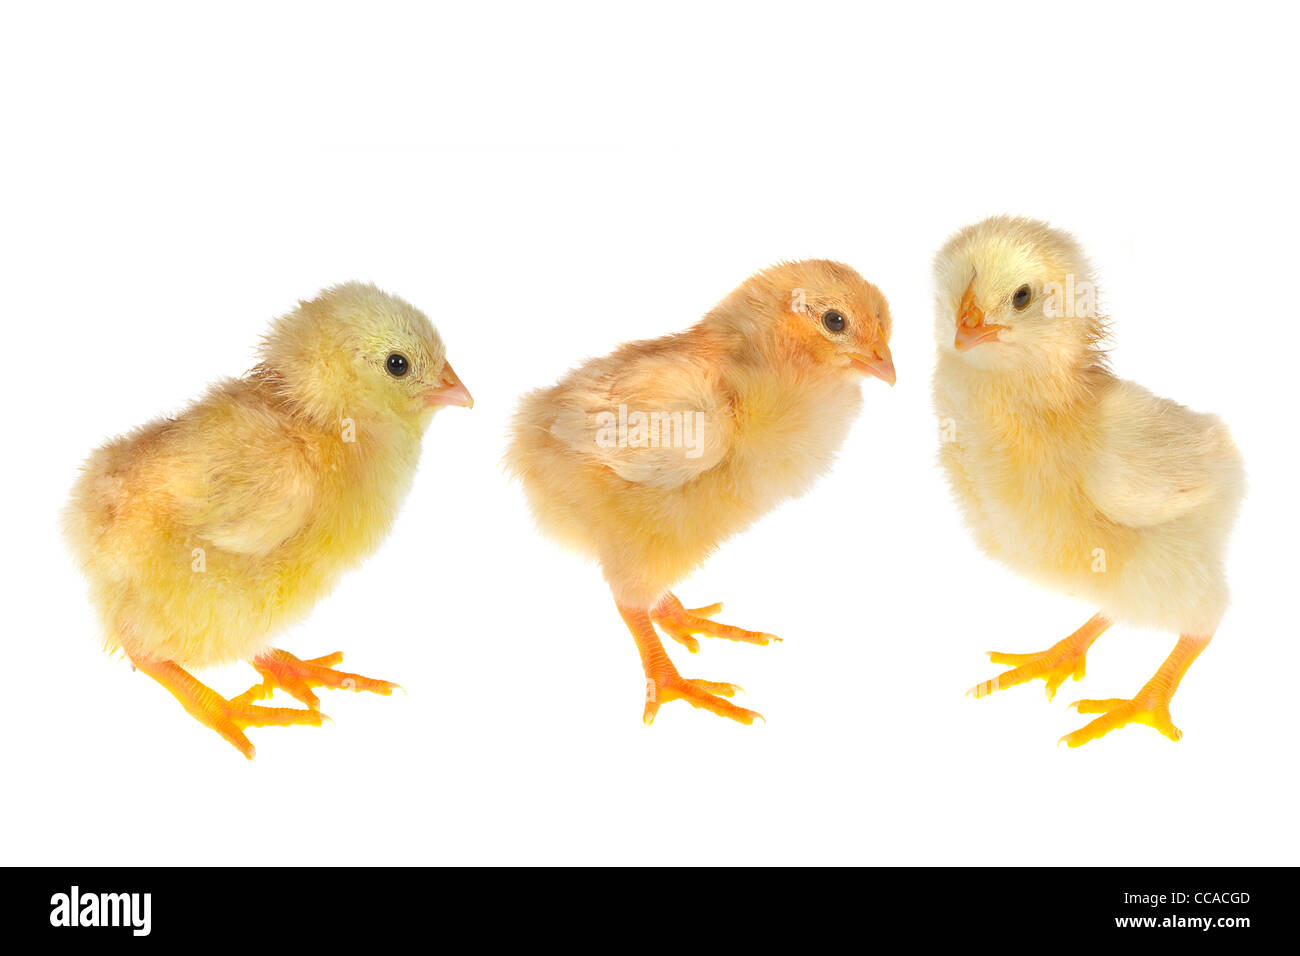 Three little newly hatched yellow easter chicks on a white background - Stock Image